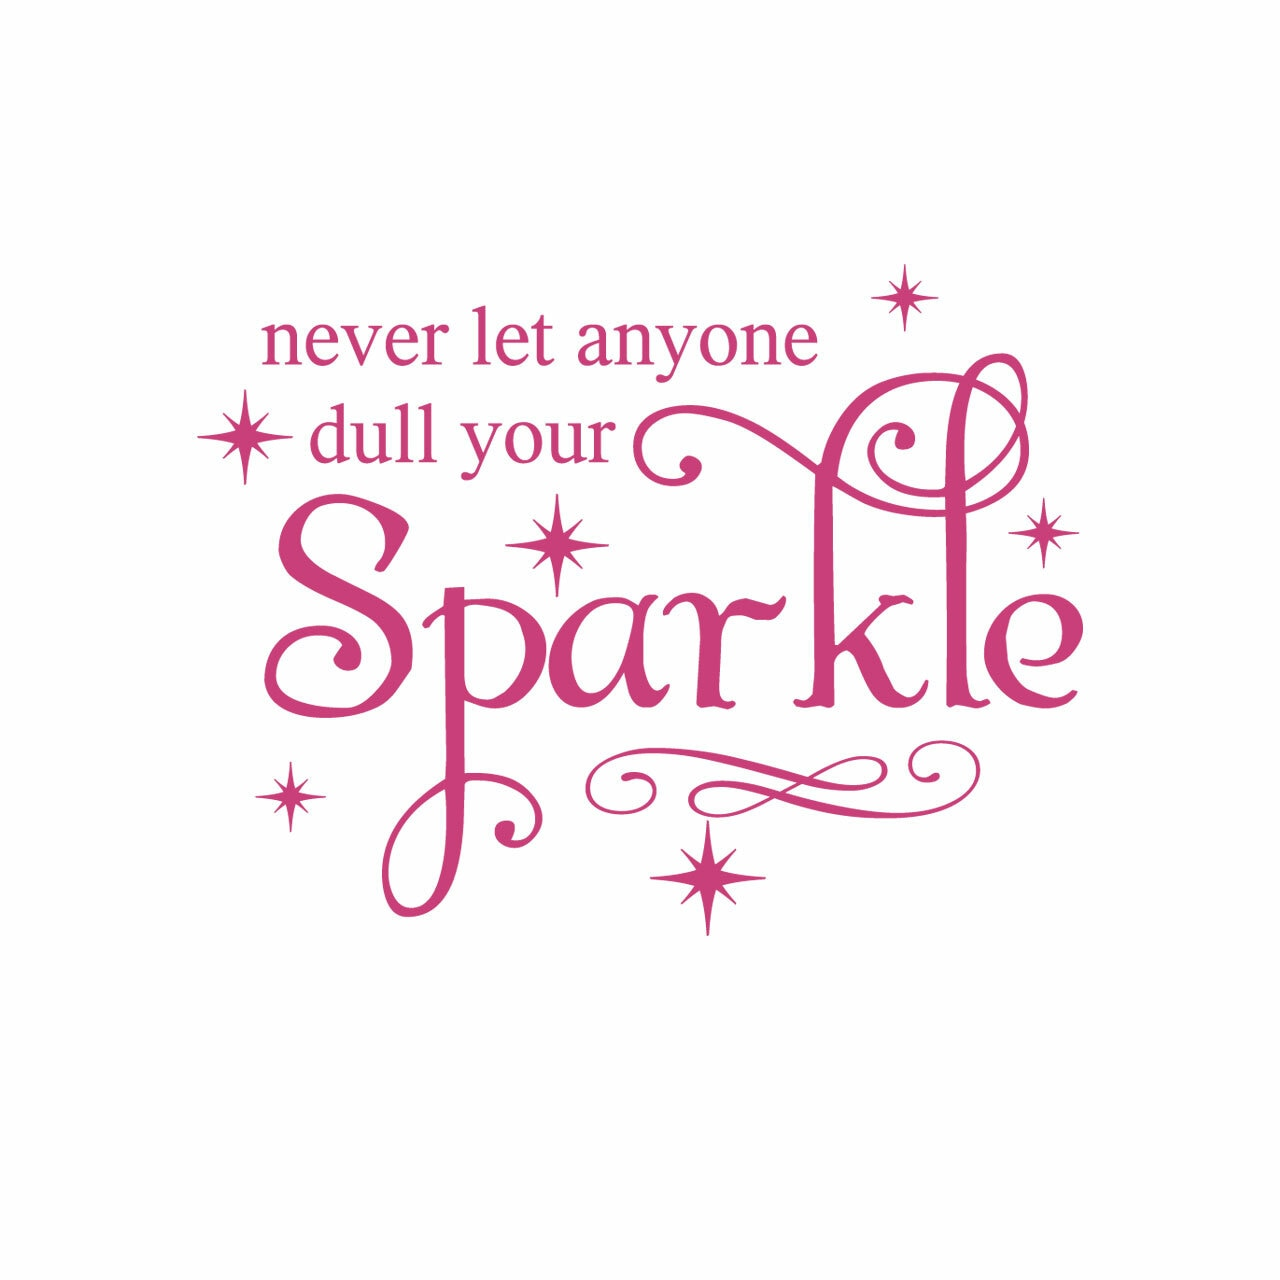 Never let anyone dull your sparkle vinyl lettering layout in hotpink on a white background.